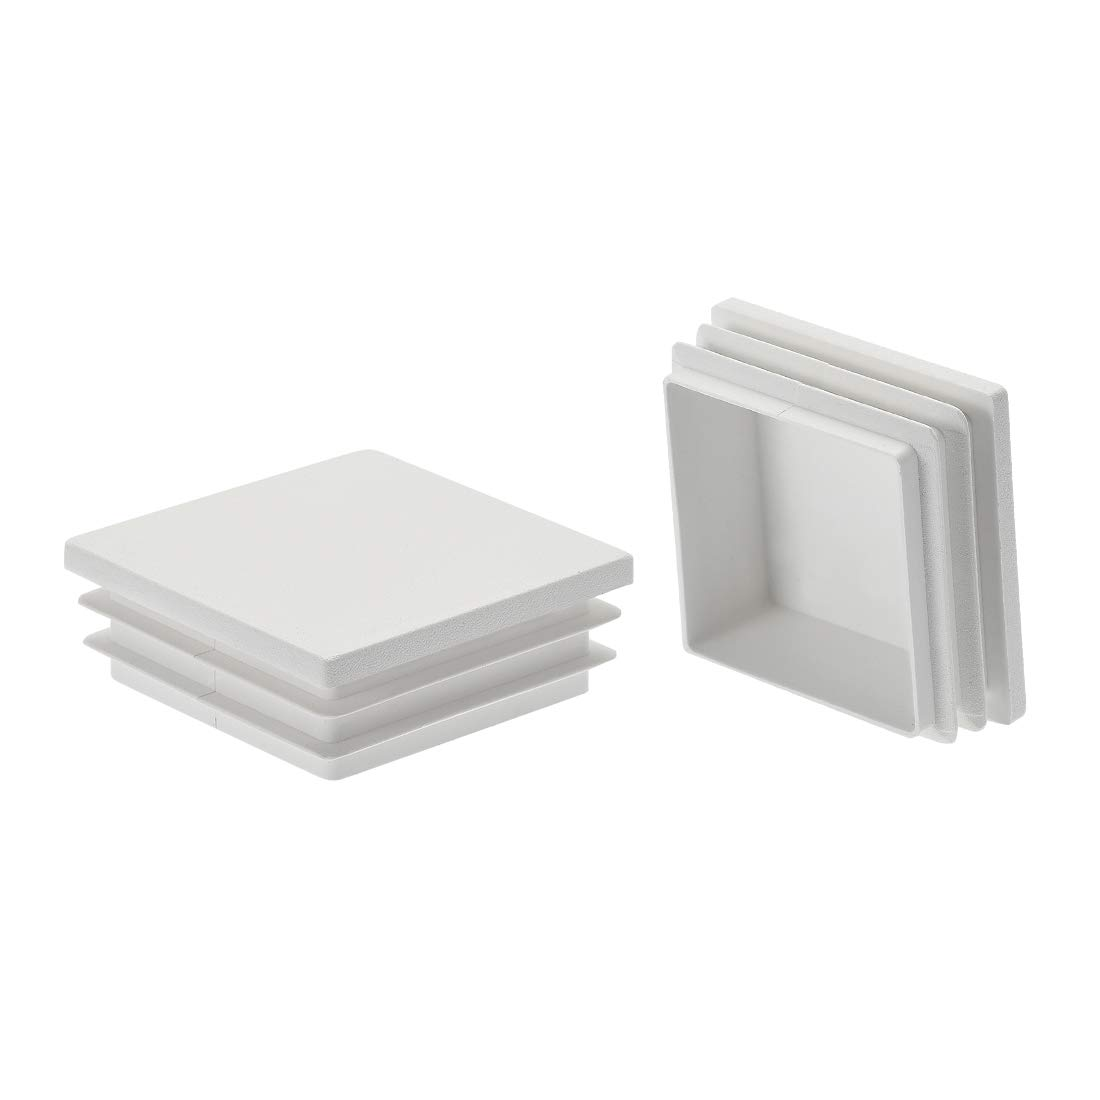 uxcell 8Pcs 50mmx50mm(2inch) Plastic Tubing Plug Square Post End Caps for Handrail Stair Newel Guardrail Tube White